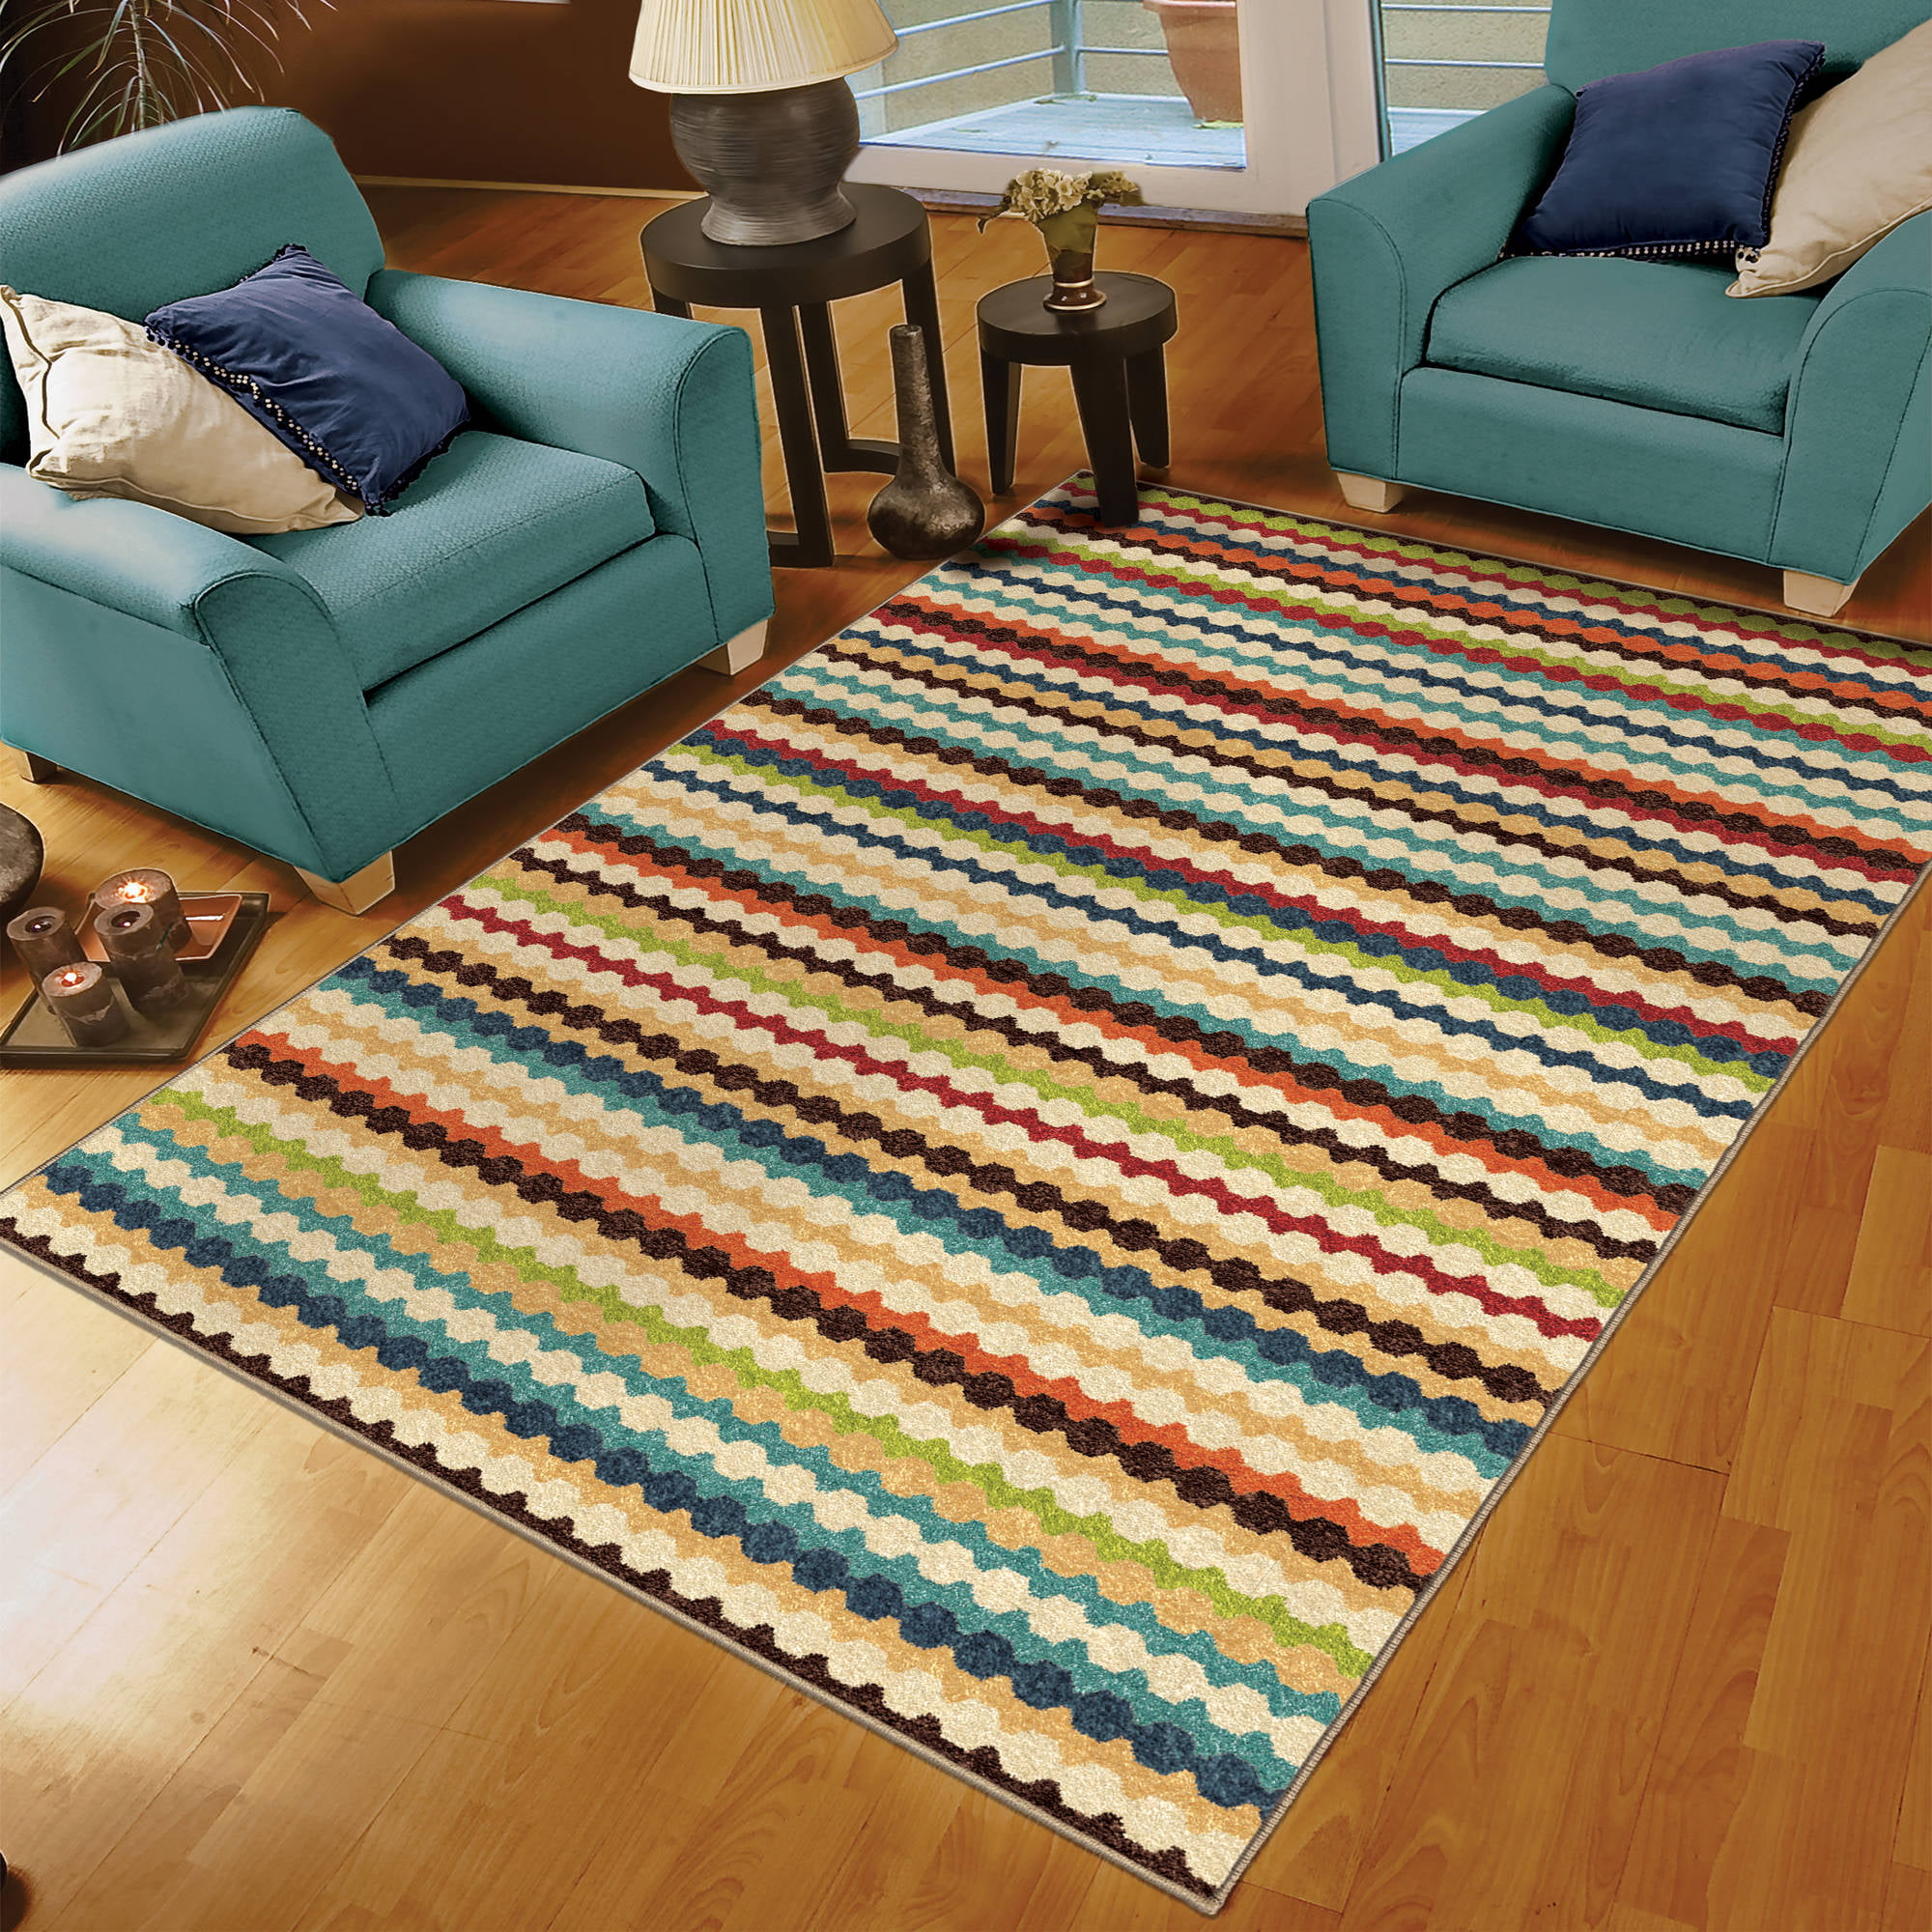 Orian Rugs Indoor/Outdoor Nik Nak Multi Colored Area Rug Or Runner